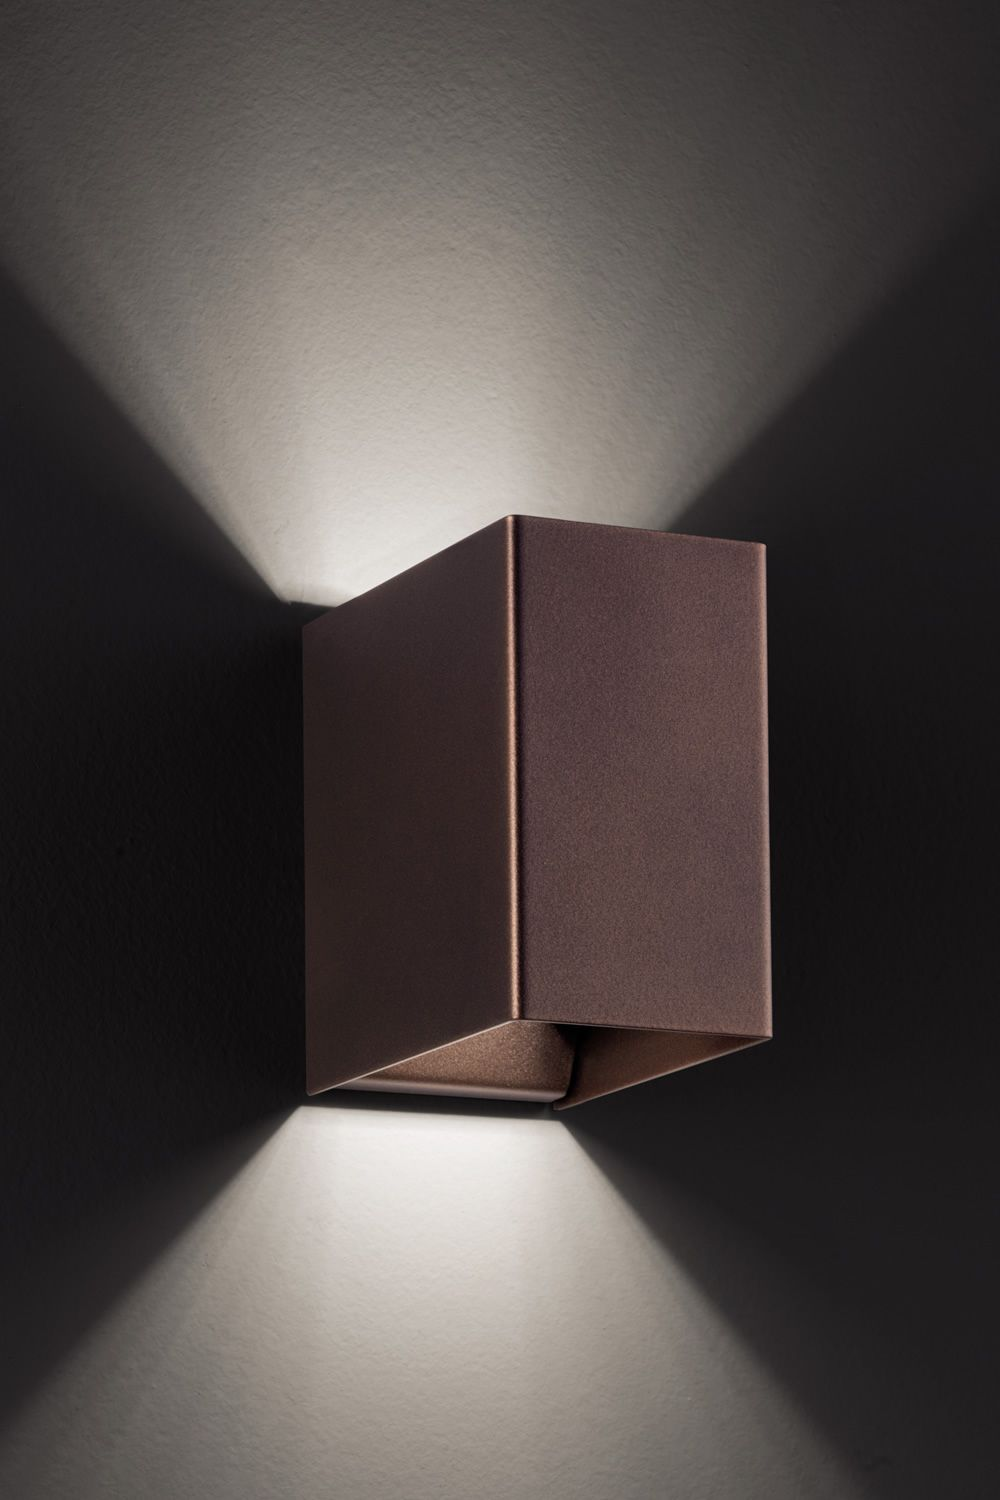 Laser cube designer wall lamp in metal with led light available laser cube wall lamp design in coppery bronze metal s aloadofball Image collections